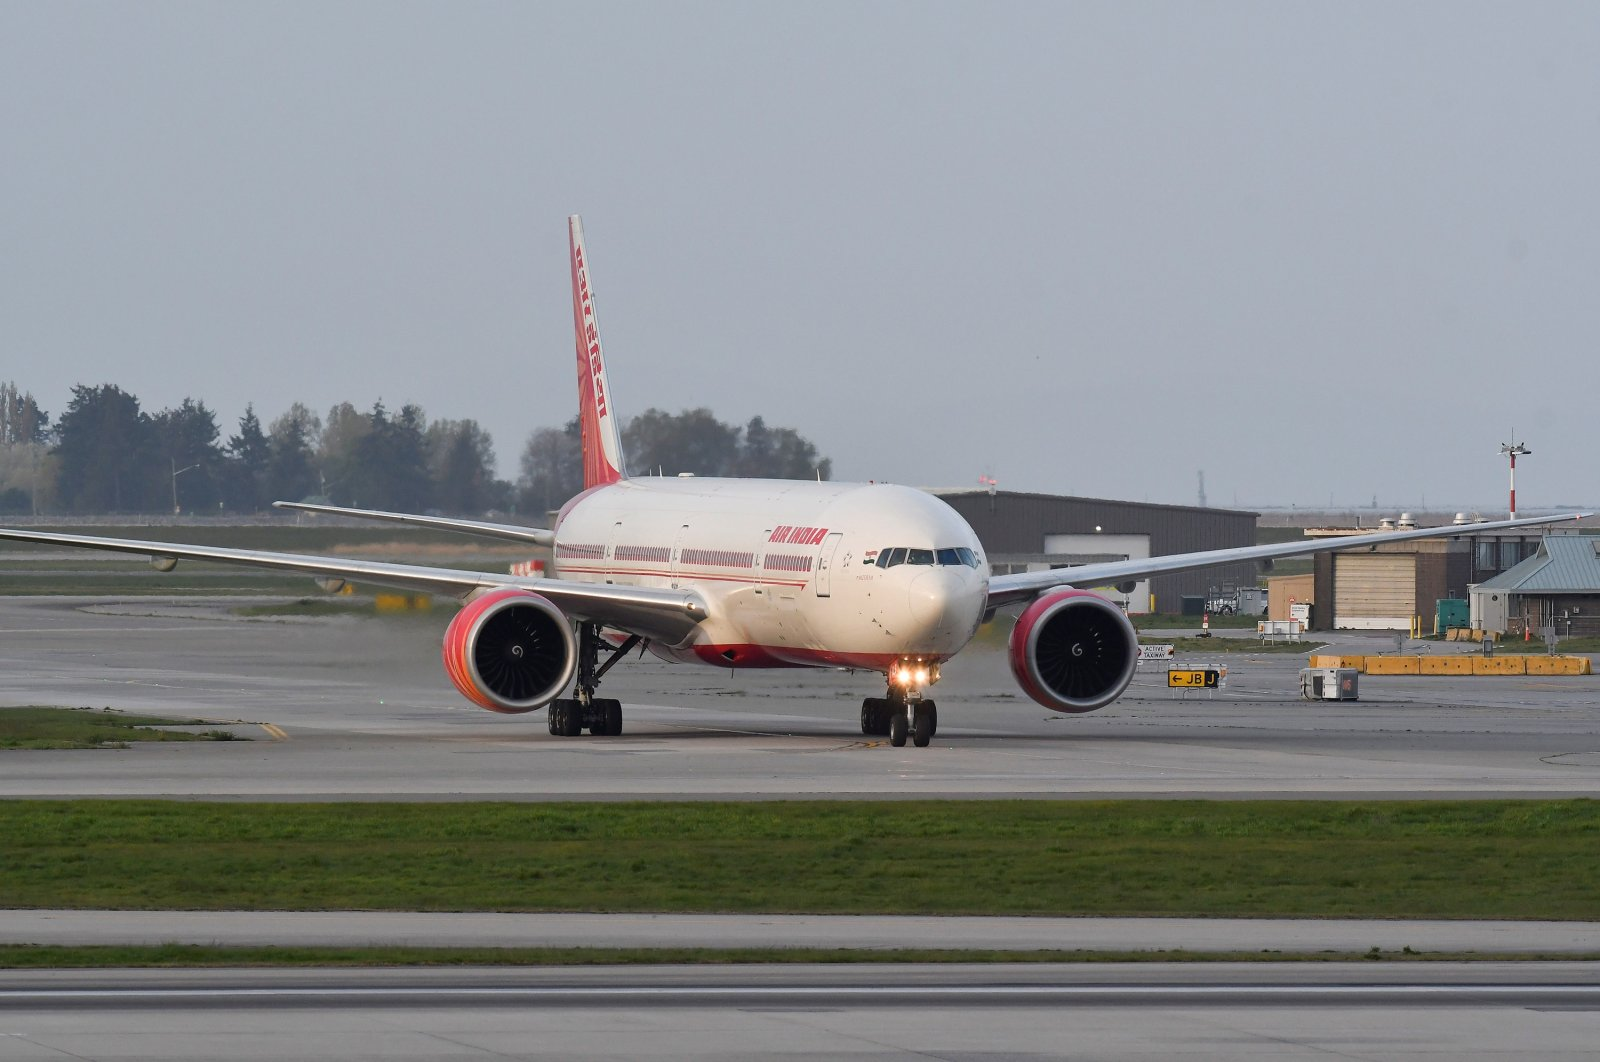 Air India flight 185 arrives from New Delhi, narrowly beating the cut-off after Canada's government temporarily barred passenger flights from India and Pakistan for 30 days, at Vancouver International Airport in Richmond, British Columbia, Canada, April 23, 2021. (Reuters Photo)